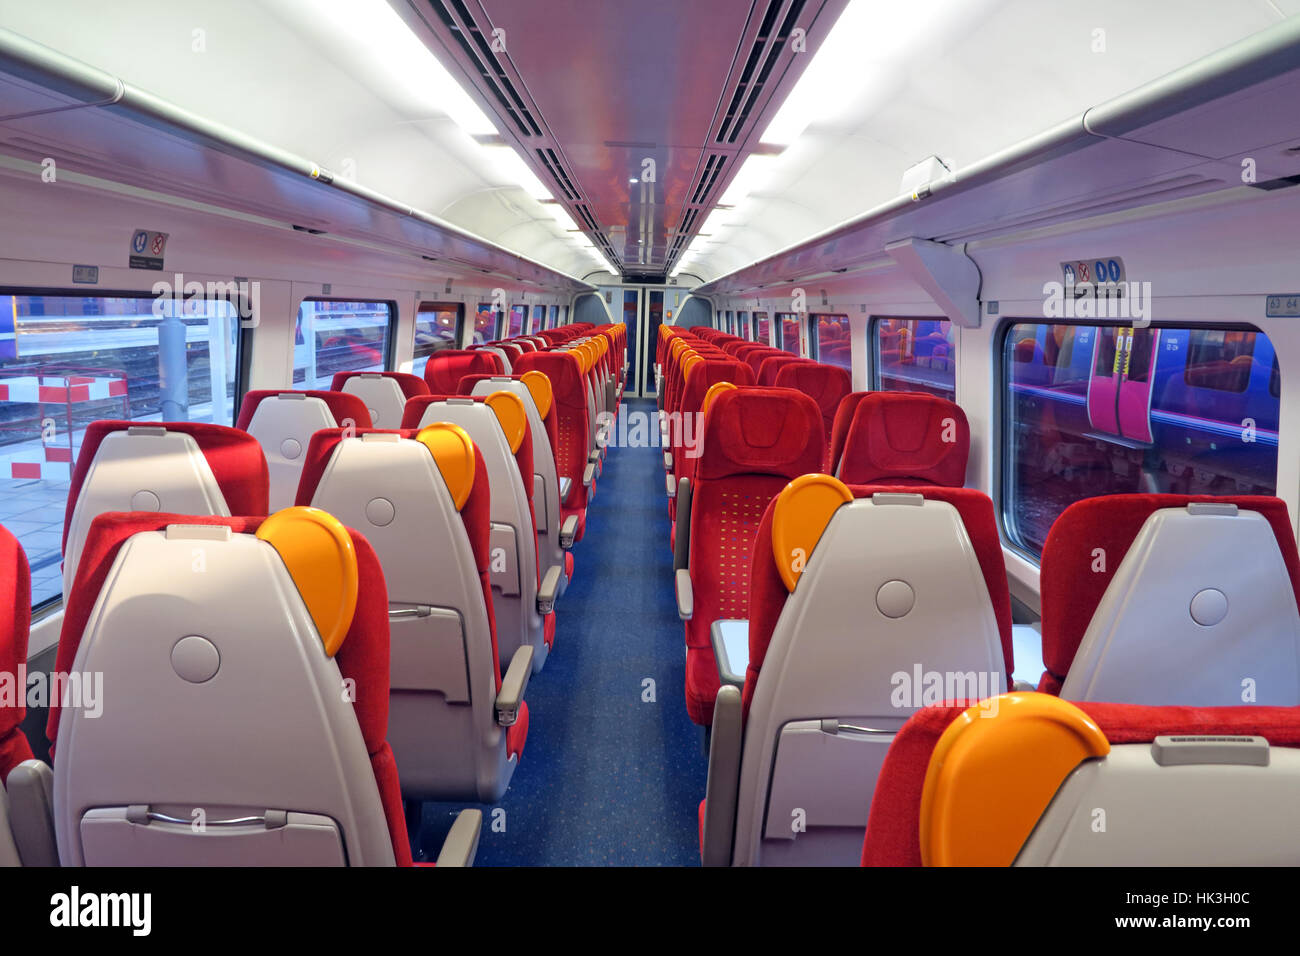 Inside,interior,empty,coach,carriage,seat,red,orange,seats,TOC,train,operating,company,cheap,night,dusk,evening,standard,first,class,herd,Expensive,ticket,price,prices,UK,east,midlands,train,trains,train